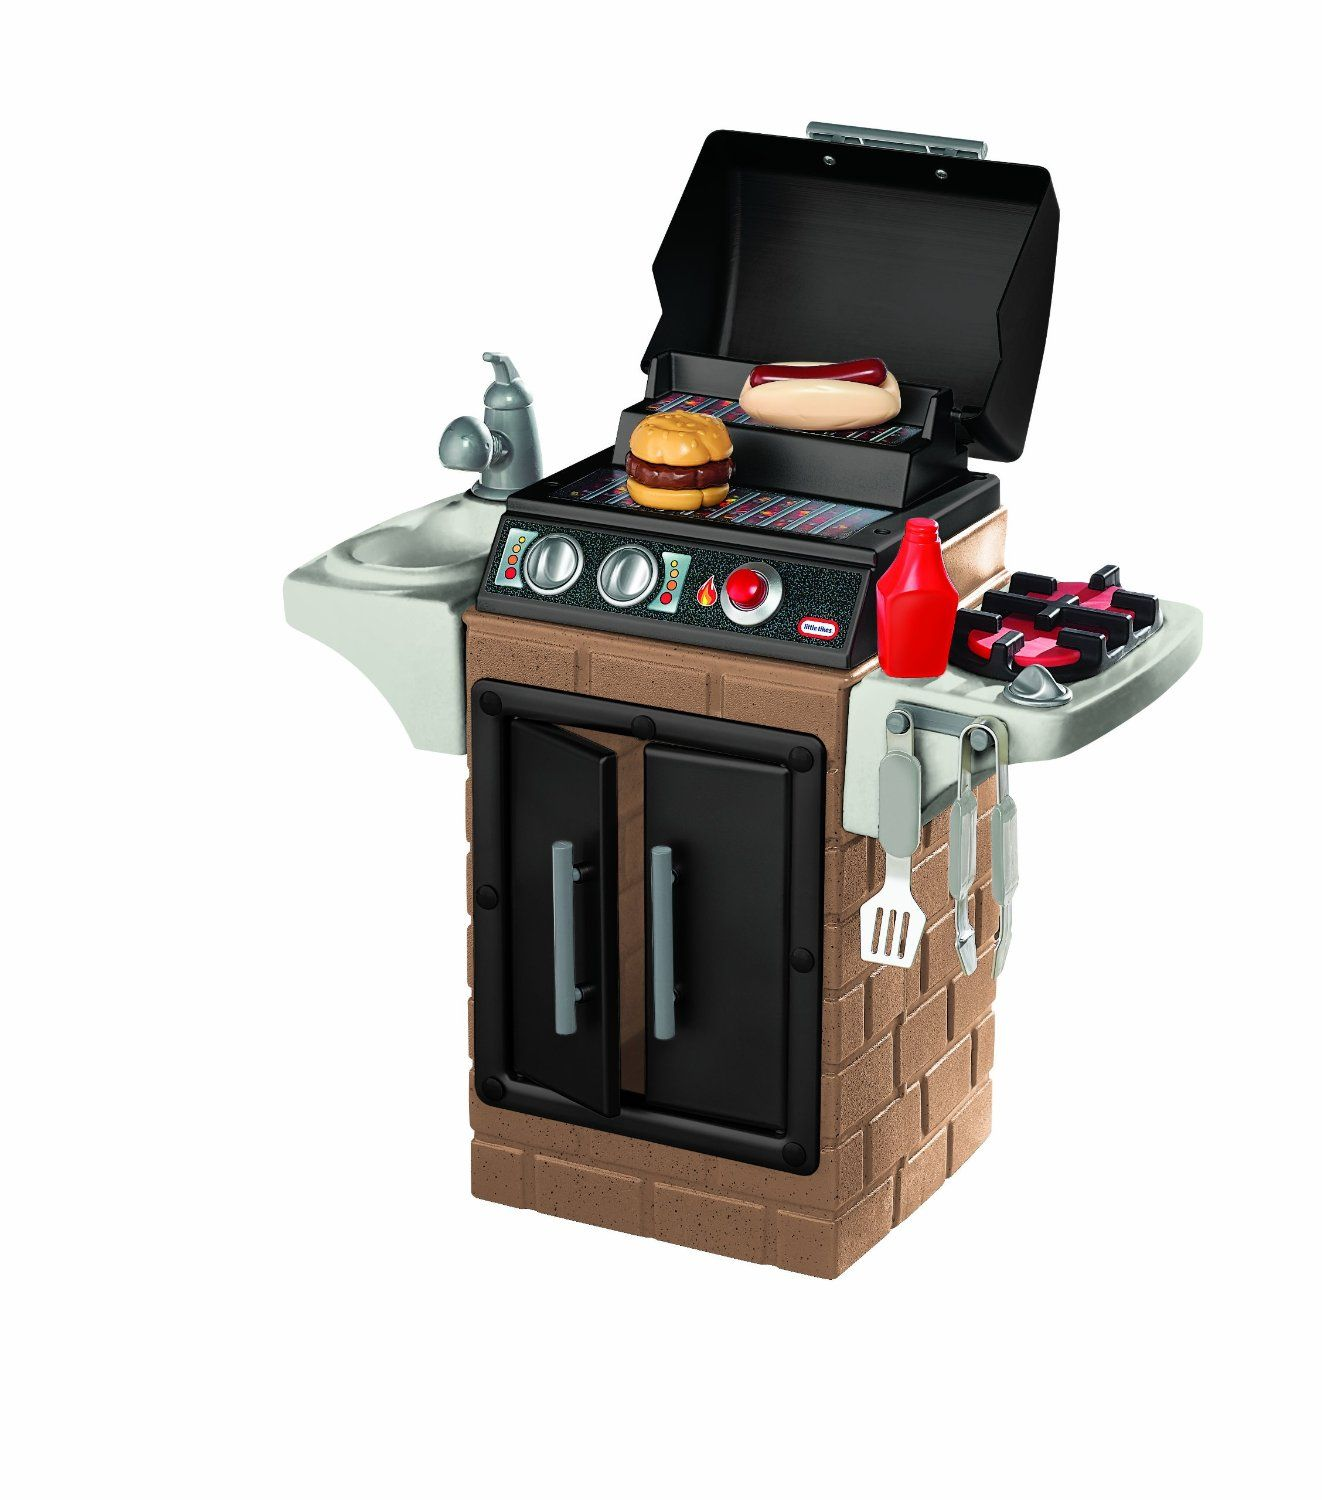 Amazon.com: Little Tikes Get Out n\' Grill Kitchen Set: Toys & Games ...